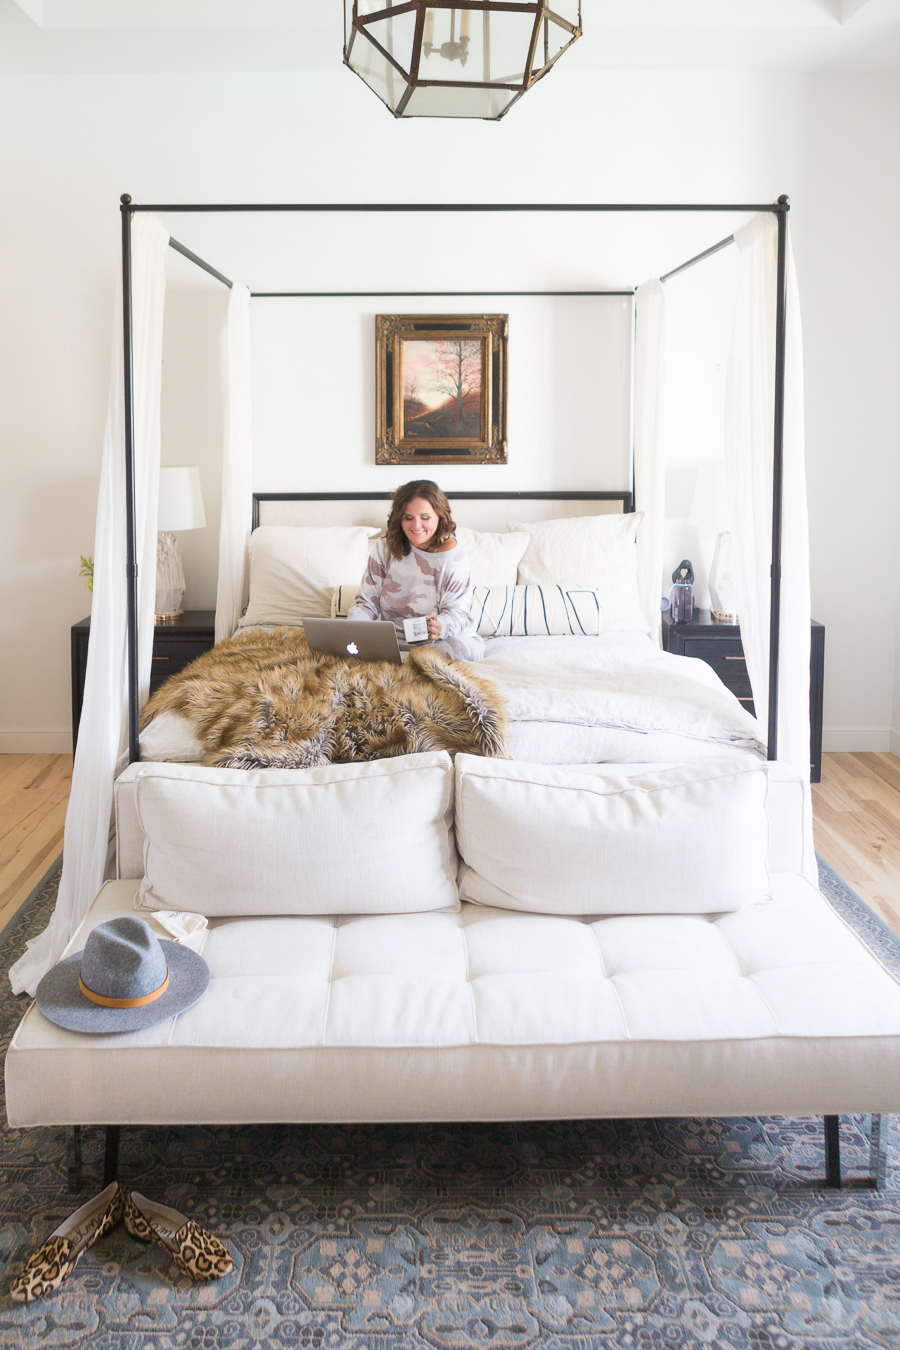 Loveliest Looks of Fall Home Tour Beautiful Fall Home Decor and Fall Fashion Ideas lifestyle blogger in Aerie camo jogger set sitting on a canopy bed with linen bedding and a fur throw with a fall canvas photo of a tree hanging above the bed and a circa caged lantern pendant hanging from the ceiling